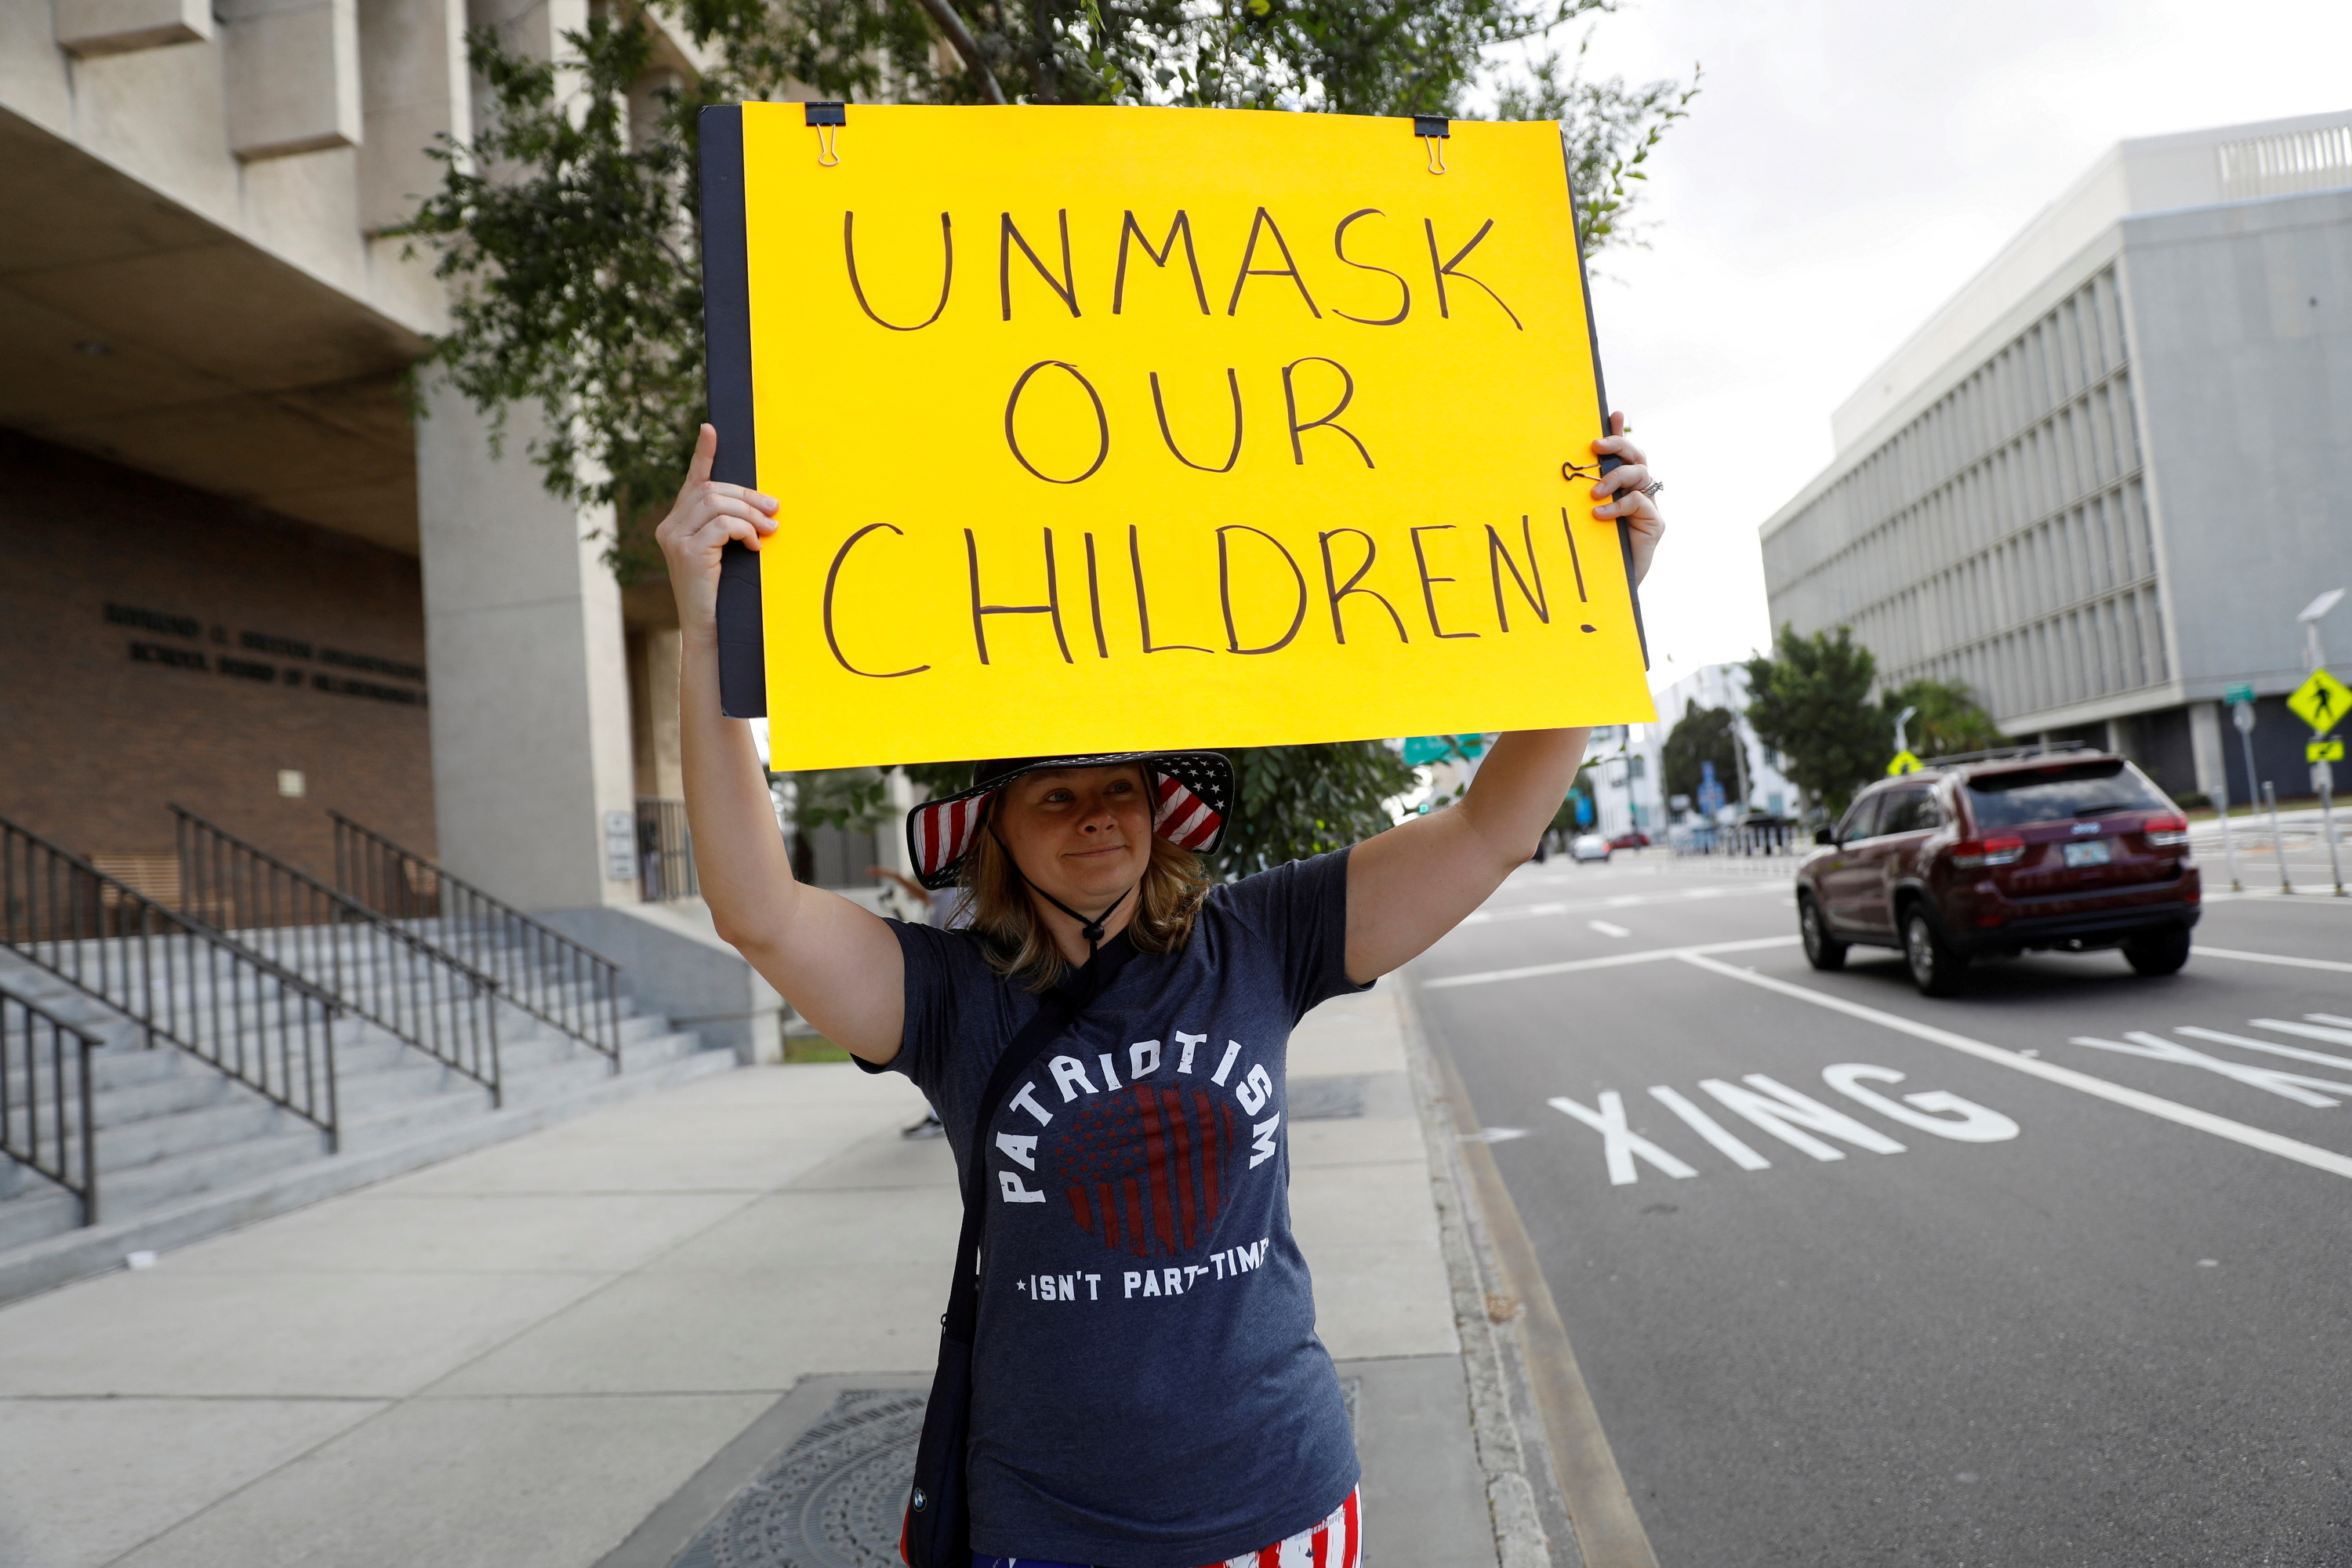 A protester who is against the school mask mandate, enacted to help slow the spread of COVID-19, stands outside with a sign at a Hillsborough County School Board meeting in Tampa, Florida, U.S. May 18, 2021.  REUTERS/Octavio Jones/File Photo